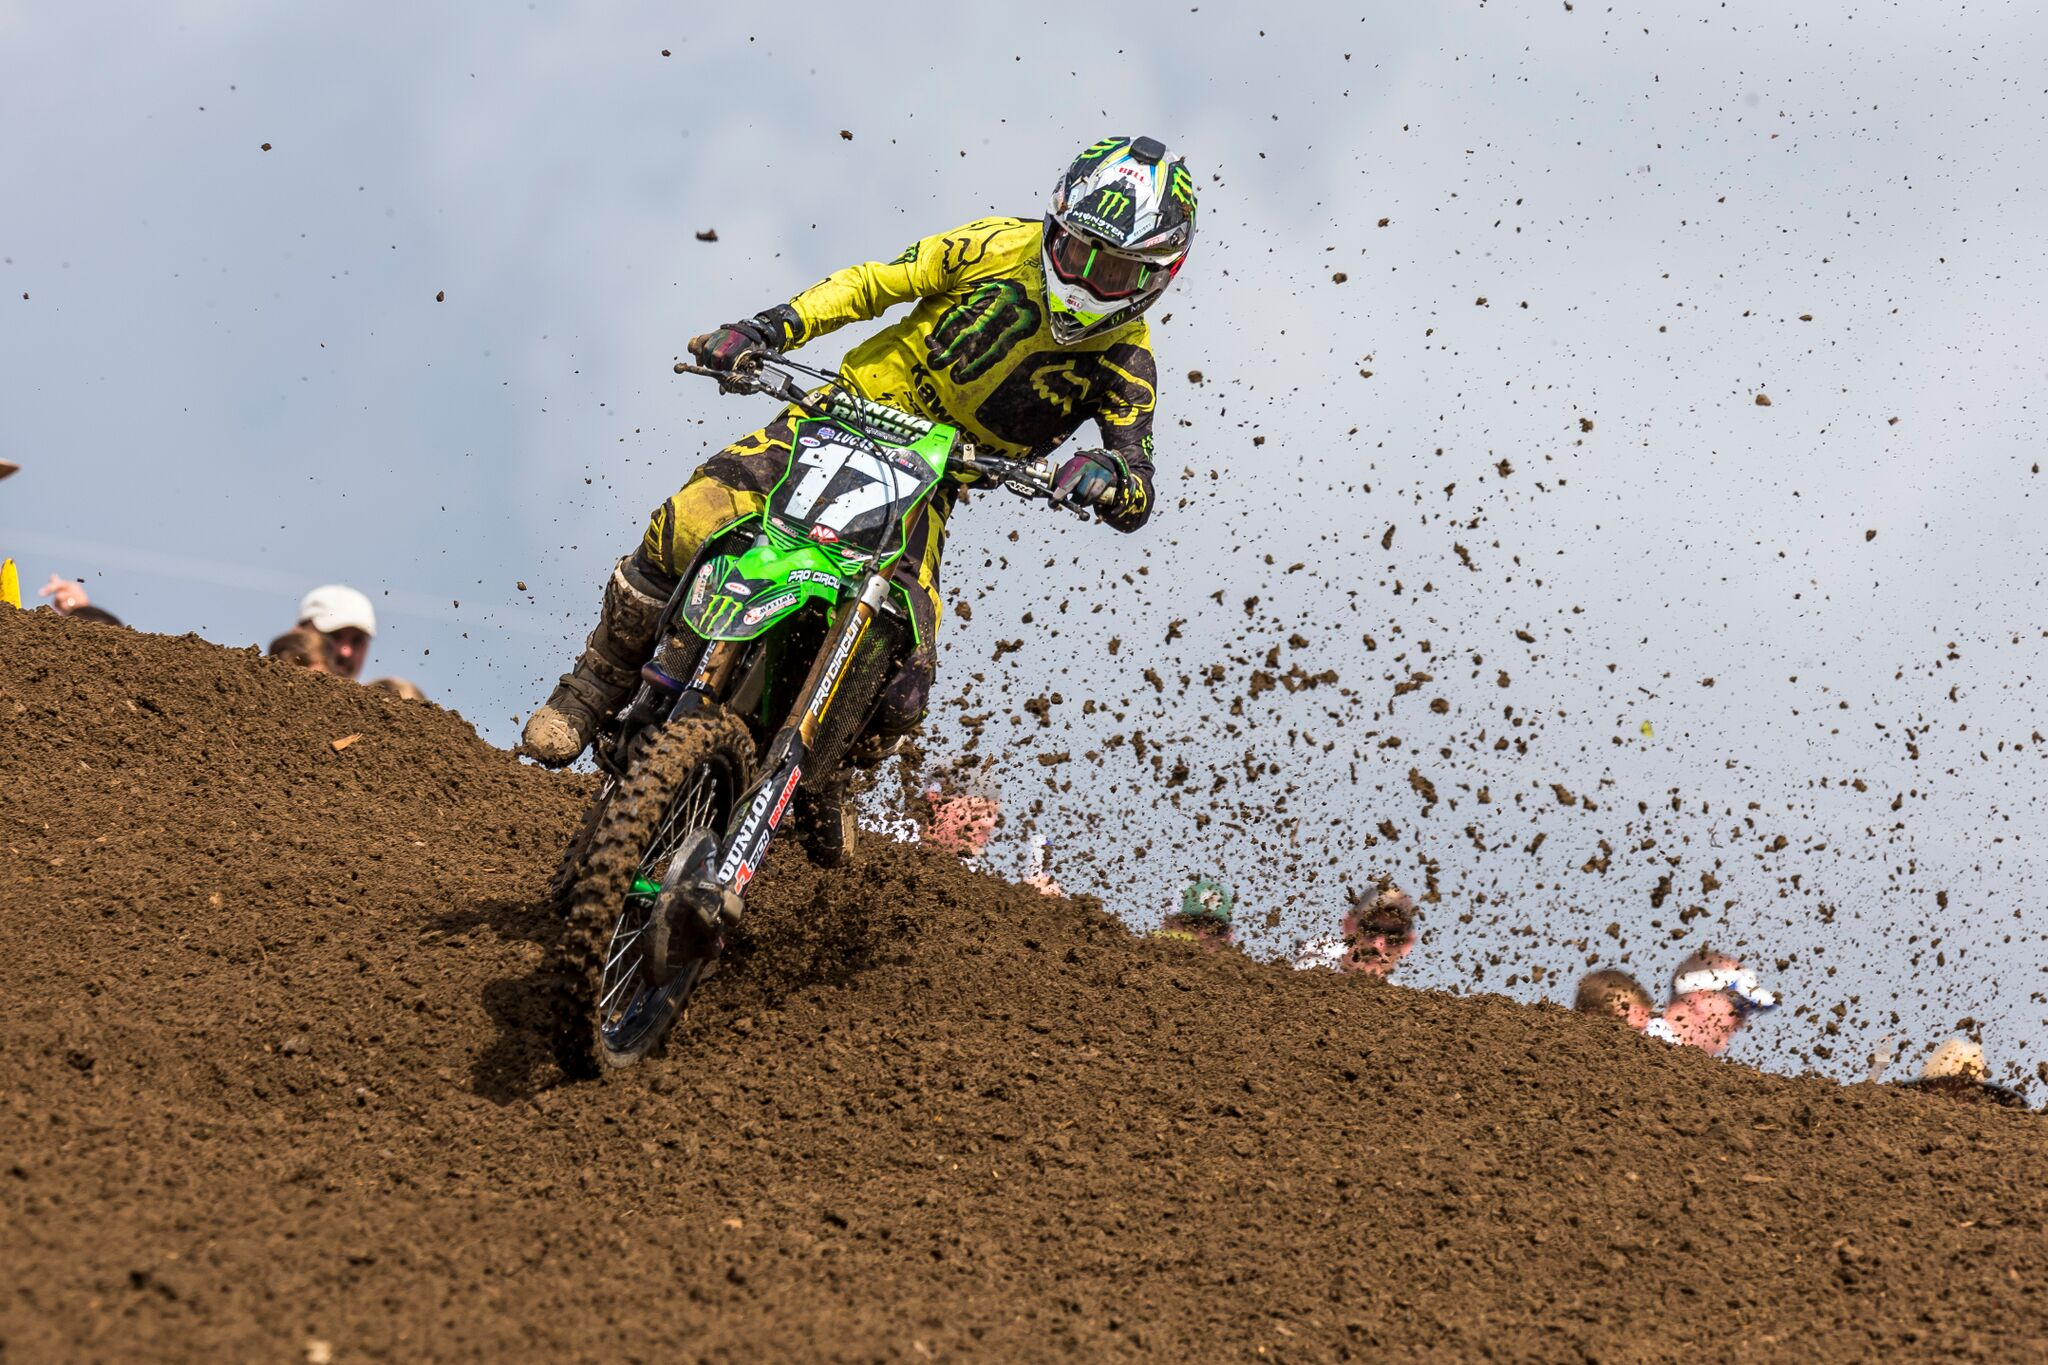 Monster Energy Pro Circuit Kawasaki Ready to Take on the Sand of Southwick